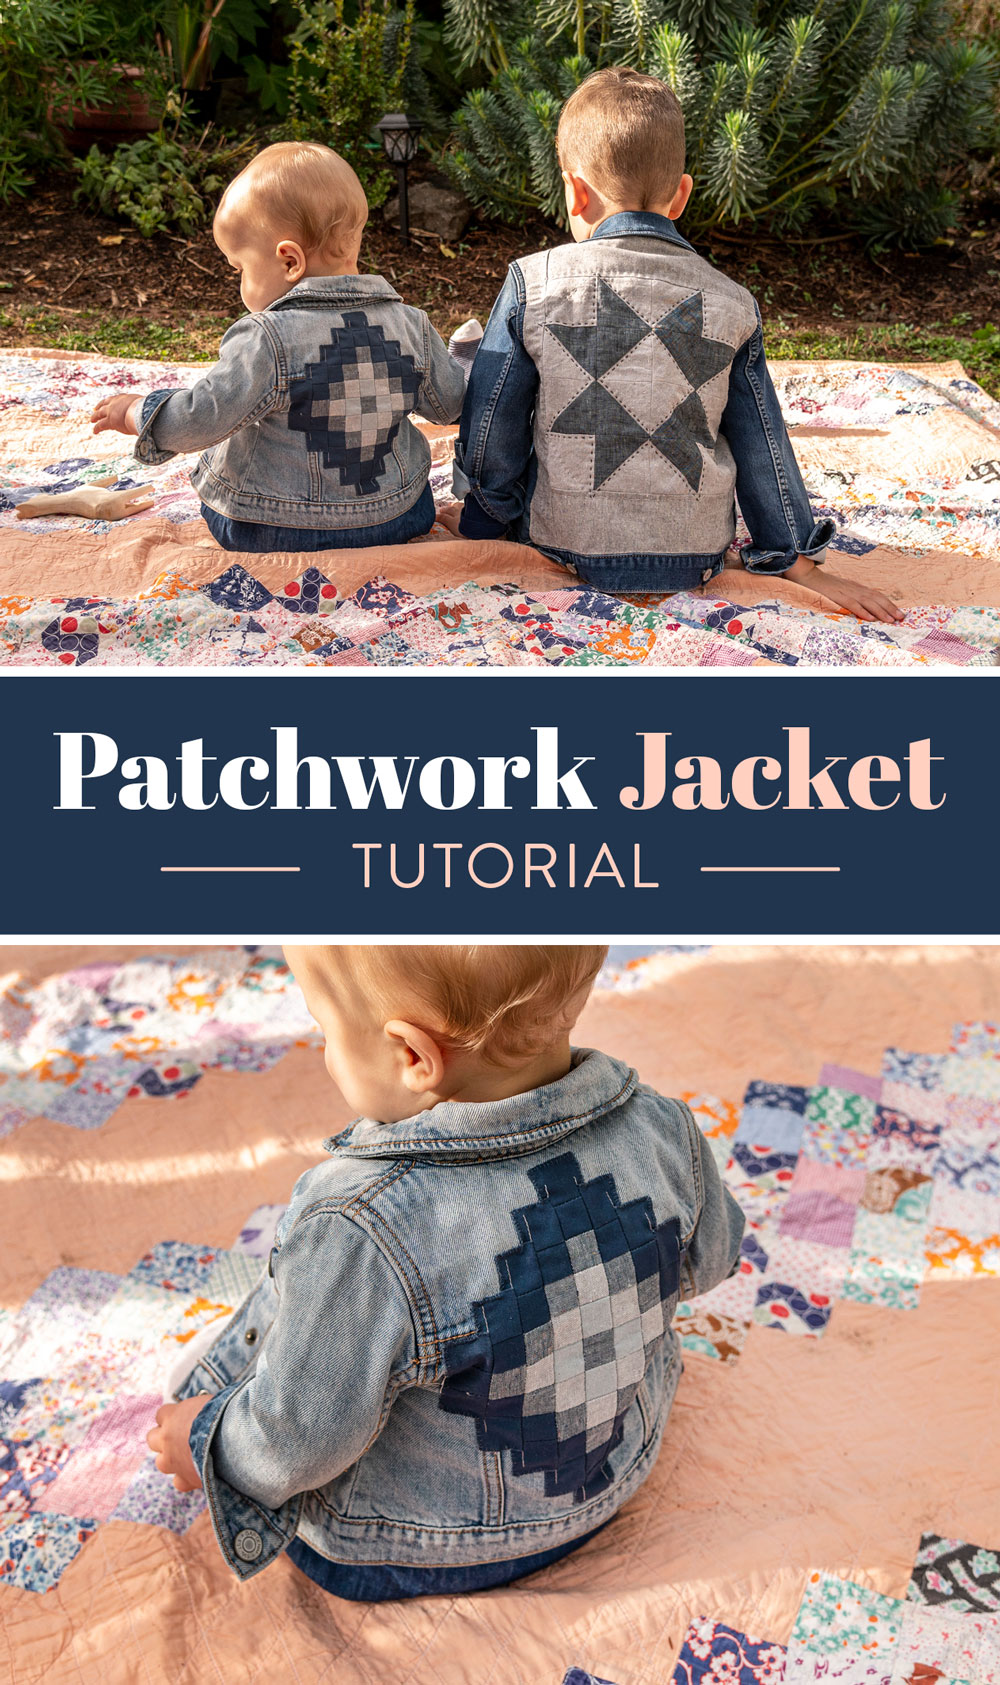 This simple patchwork jacket tutorial is the perfect way to breathe new life into old clothes. Upcycle denim or old clothing to make quilted clothing! suzyquilts.com #upcycleclothing #patchworkjacket